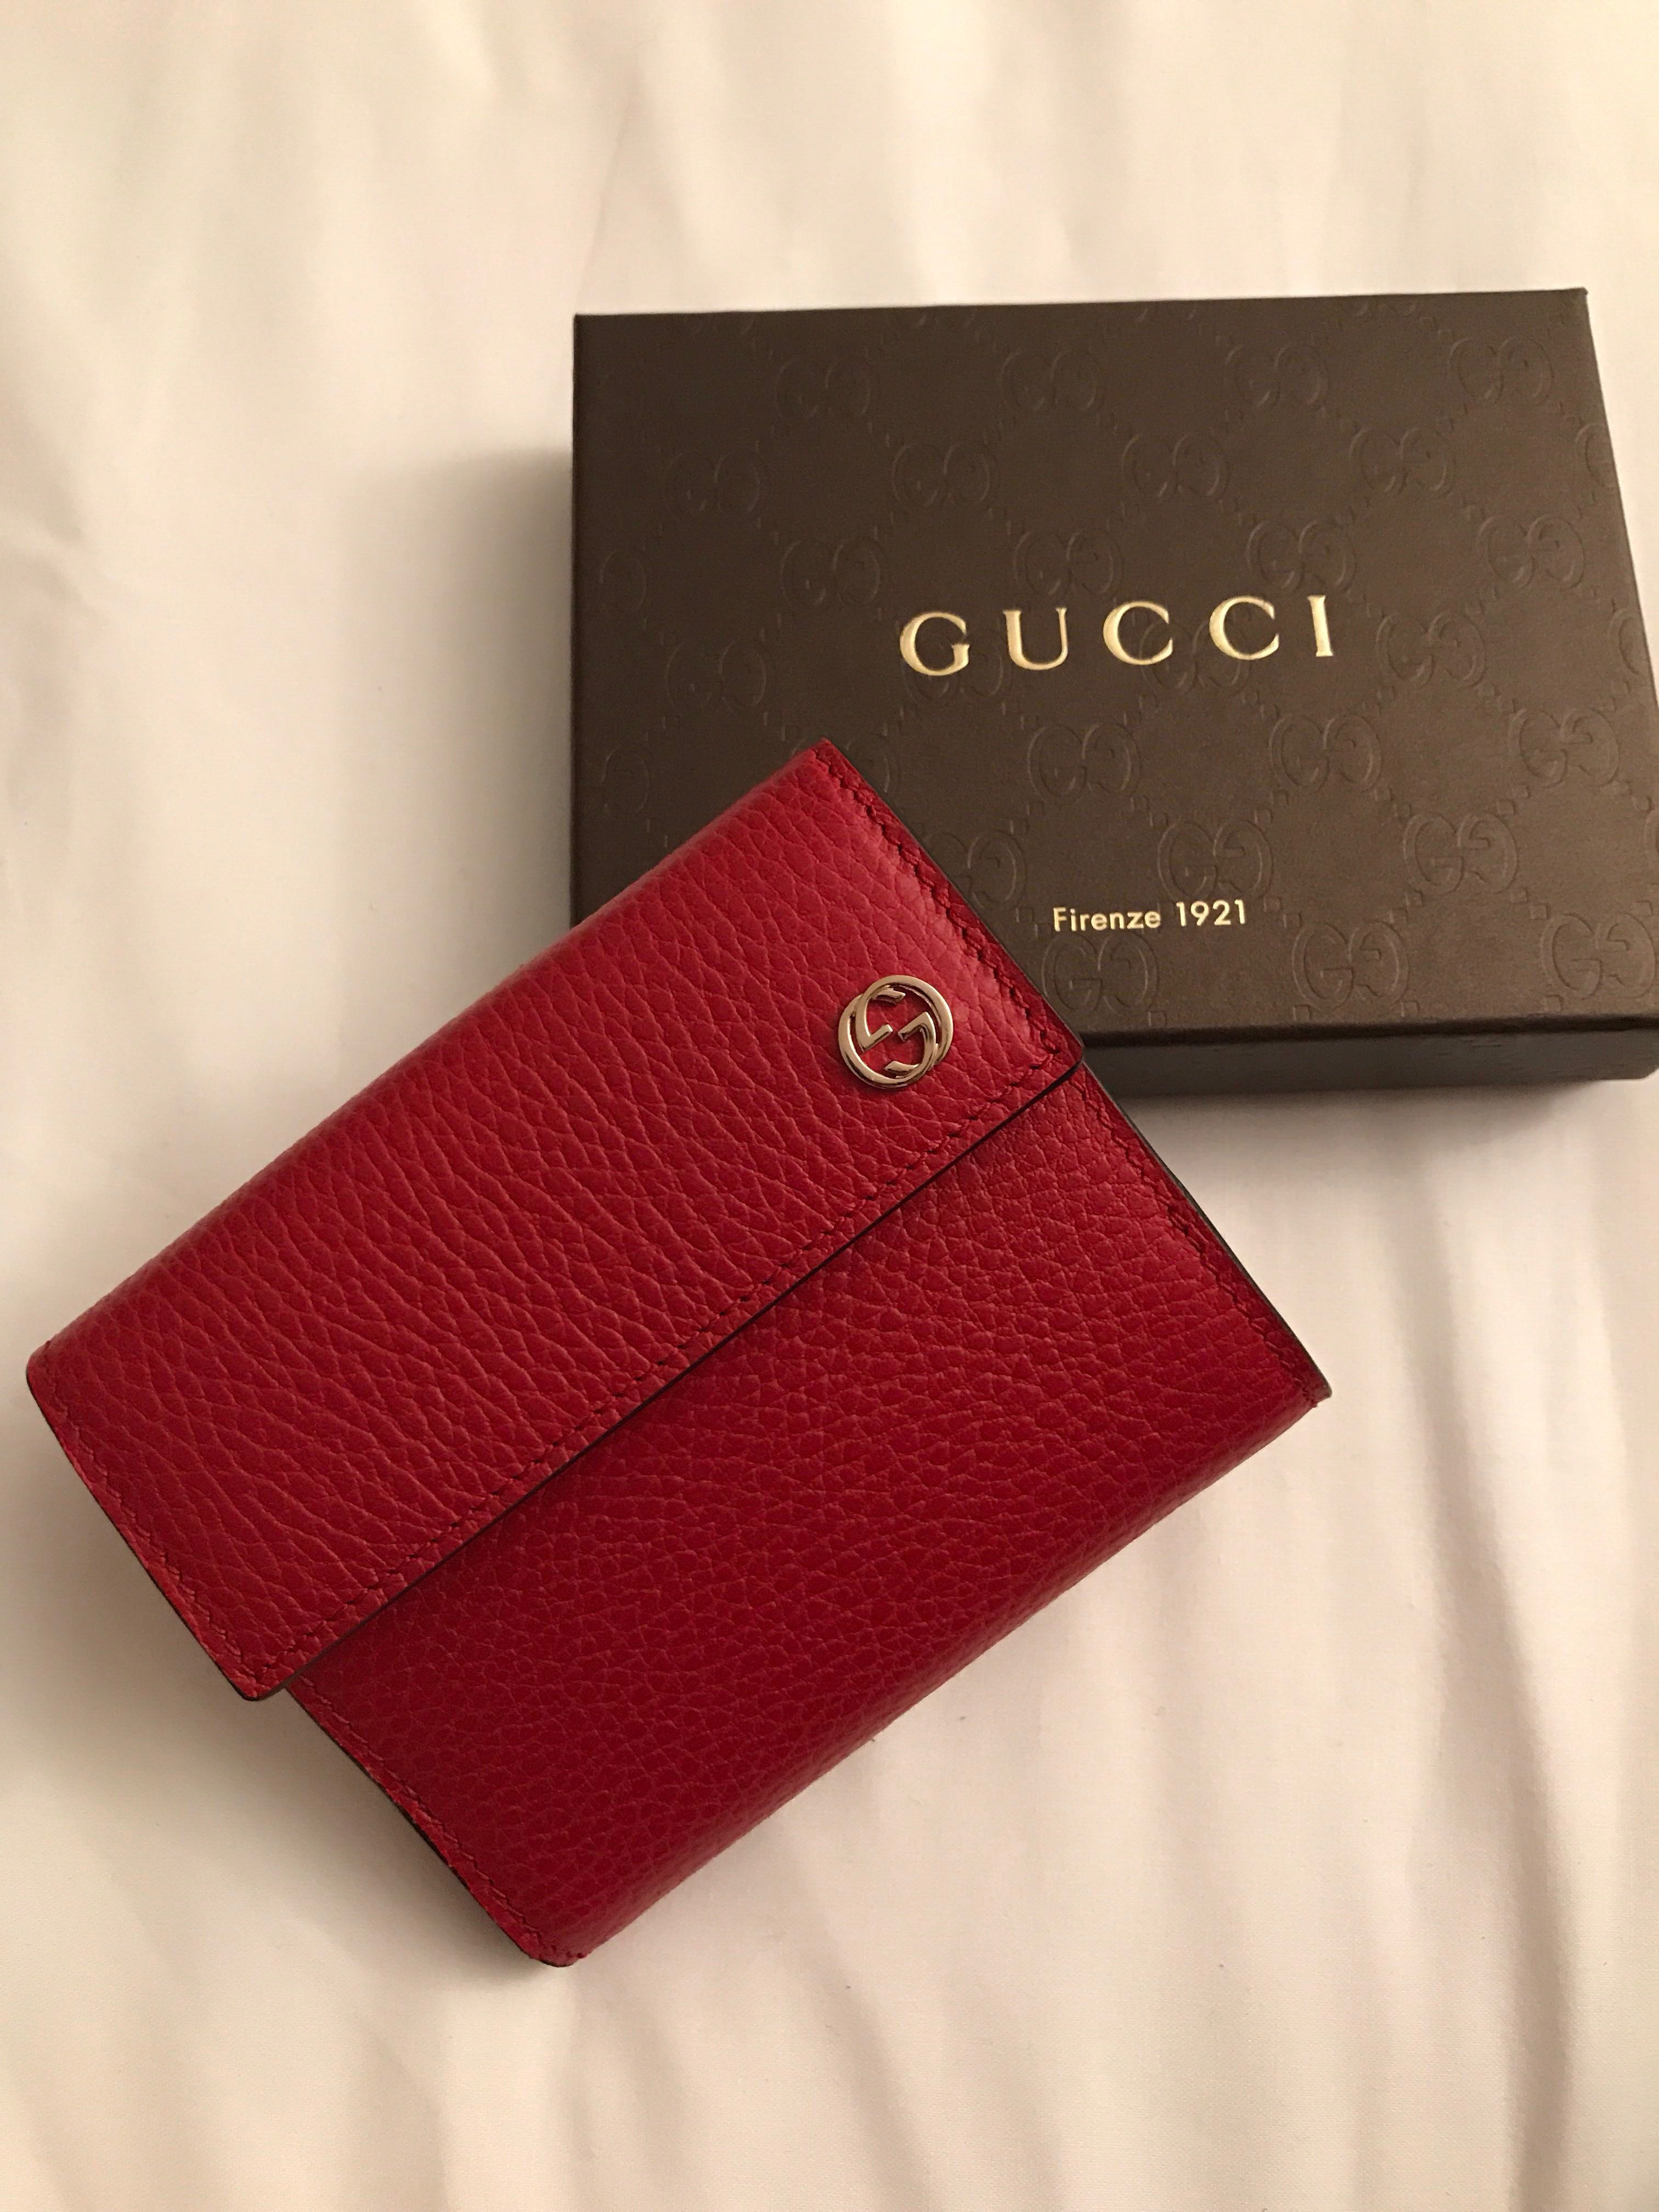 642a6cdf5728 Gucci Marmont Petite Textured-leather Wallet, Luxury, Bags & Wallets,  Wallets on Carousell